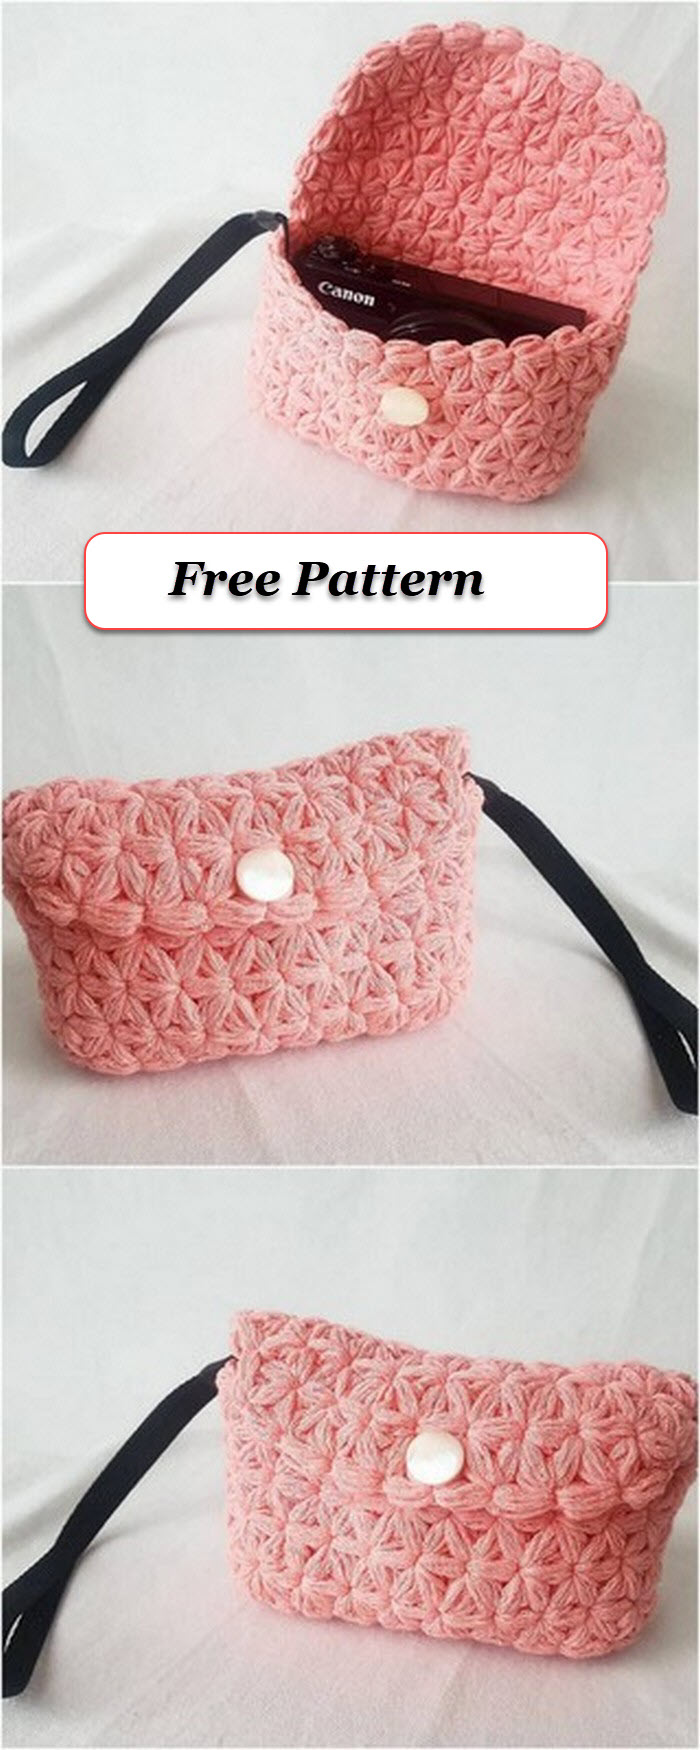 Baby pink crochet made the pouch free pattern